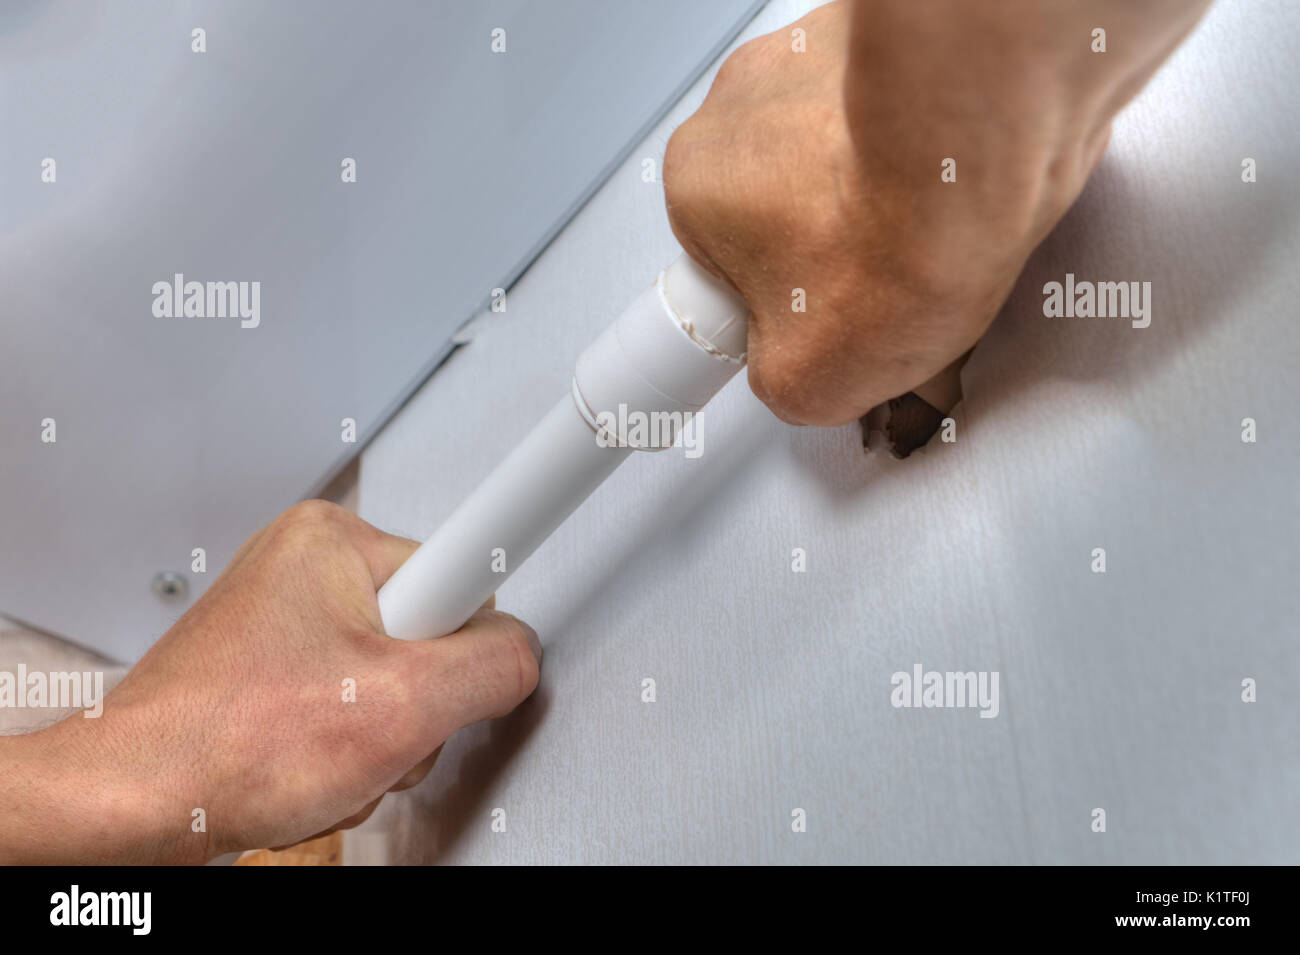 how to connect plastic water pipes